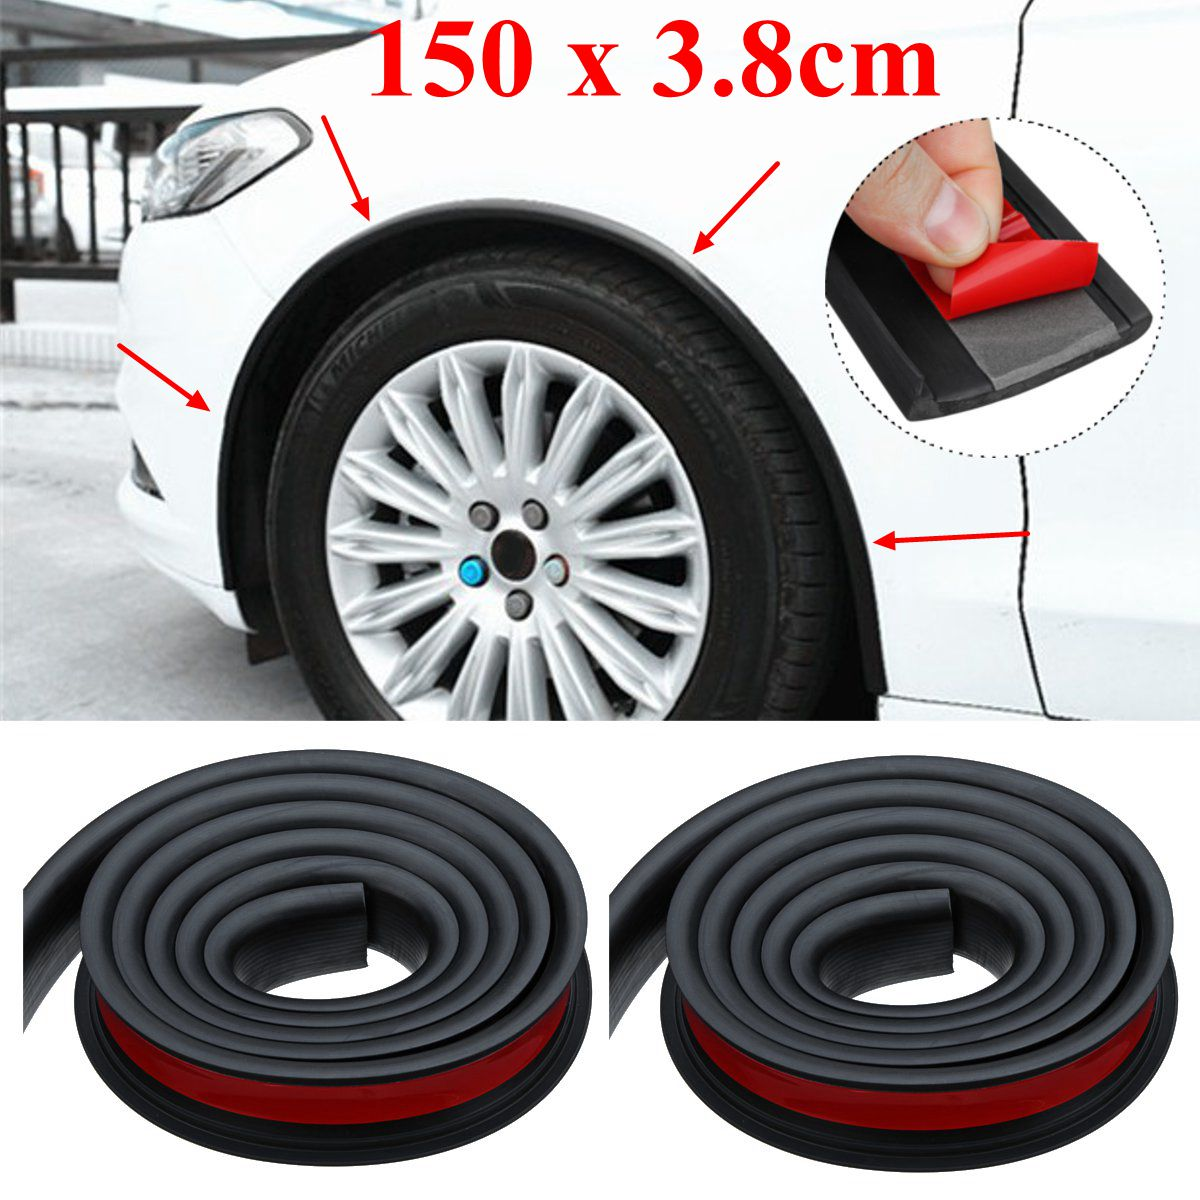 2x 1.5m Rubber Car Wheel Arch Protection Moldings Mudguard Trim Universal Black